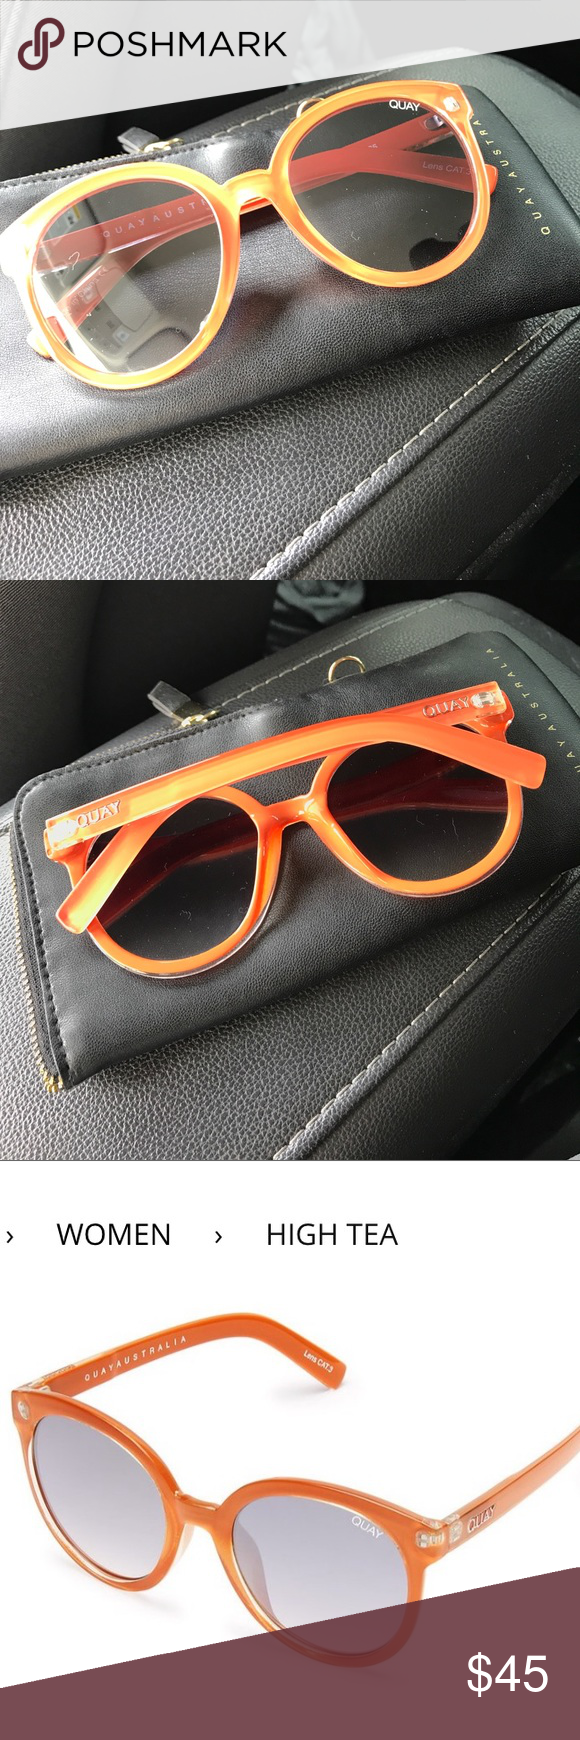 a71f481fae37 QUAY HIGH TEA SUNGLASSES Orange oversized sunglasses with mirrored frames  Quay Australia Accessories Sunglasses